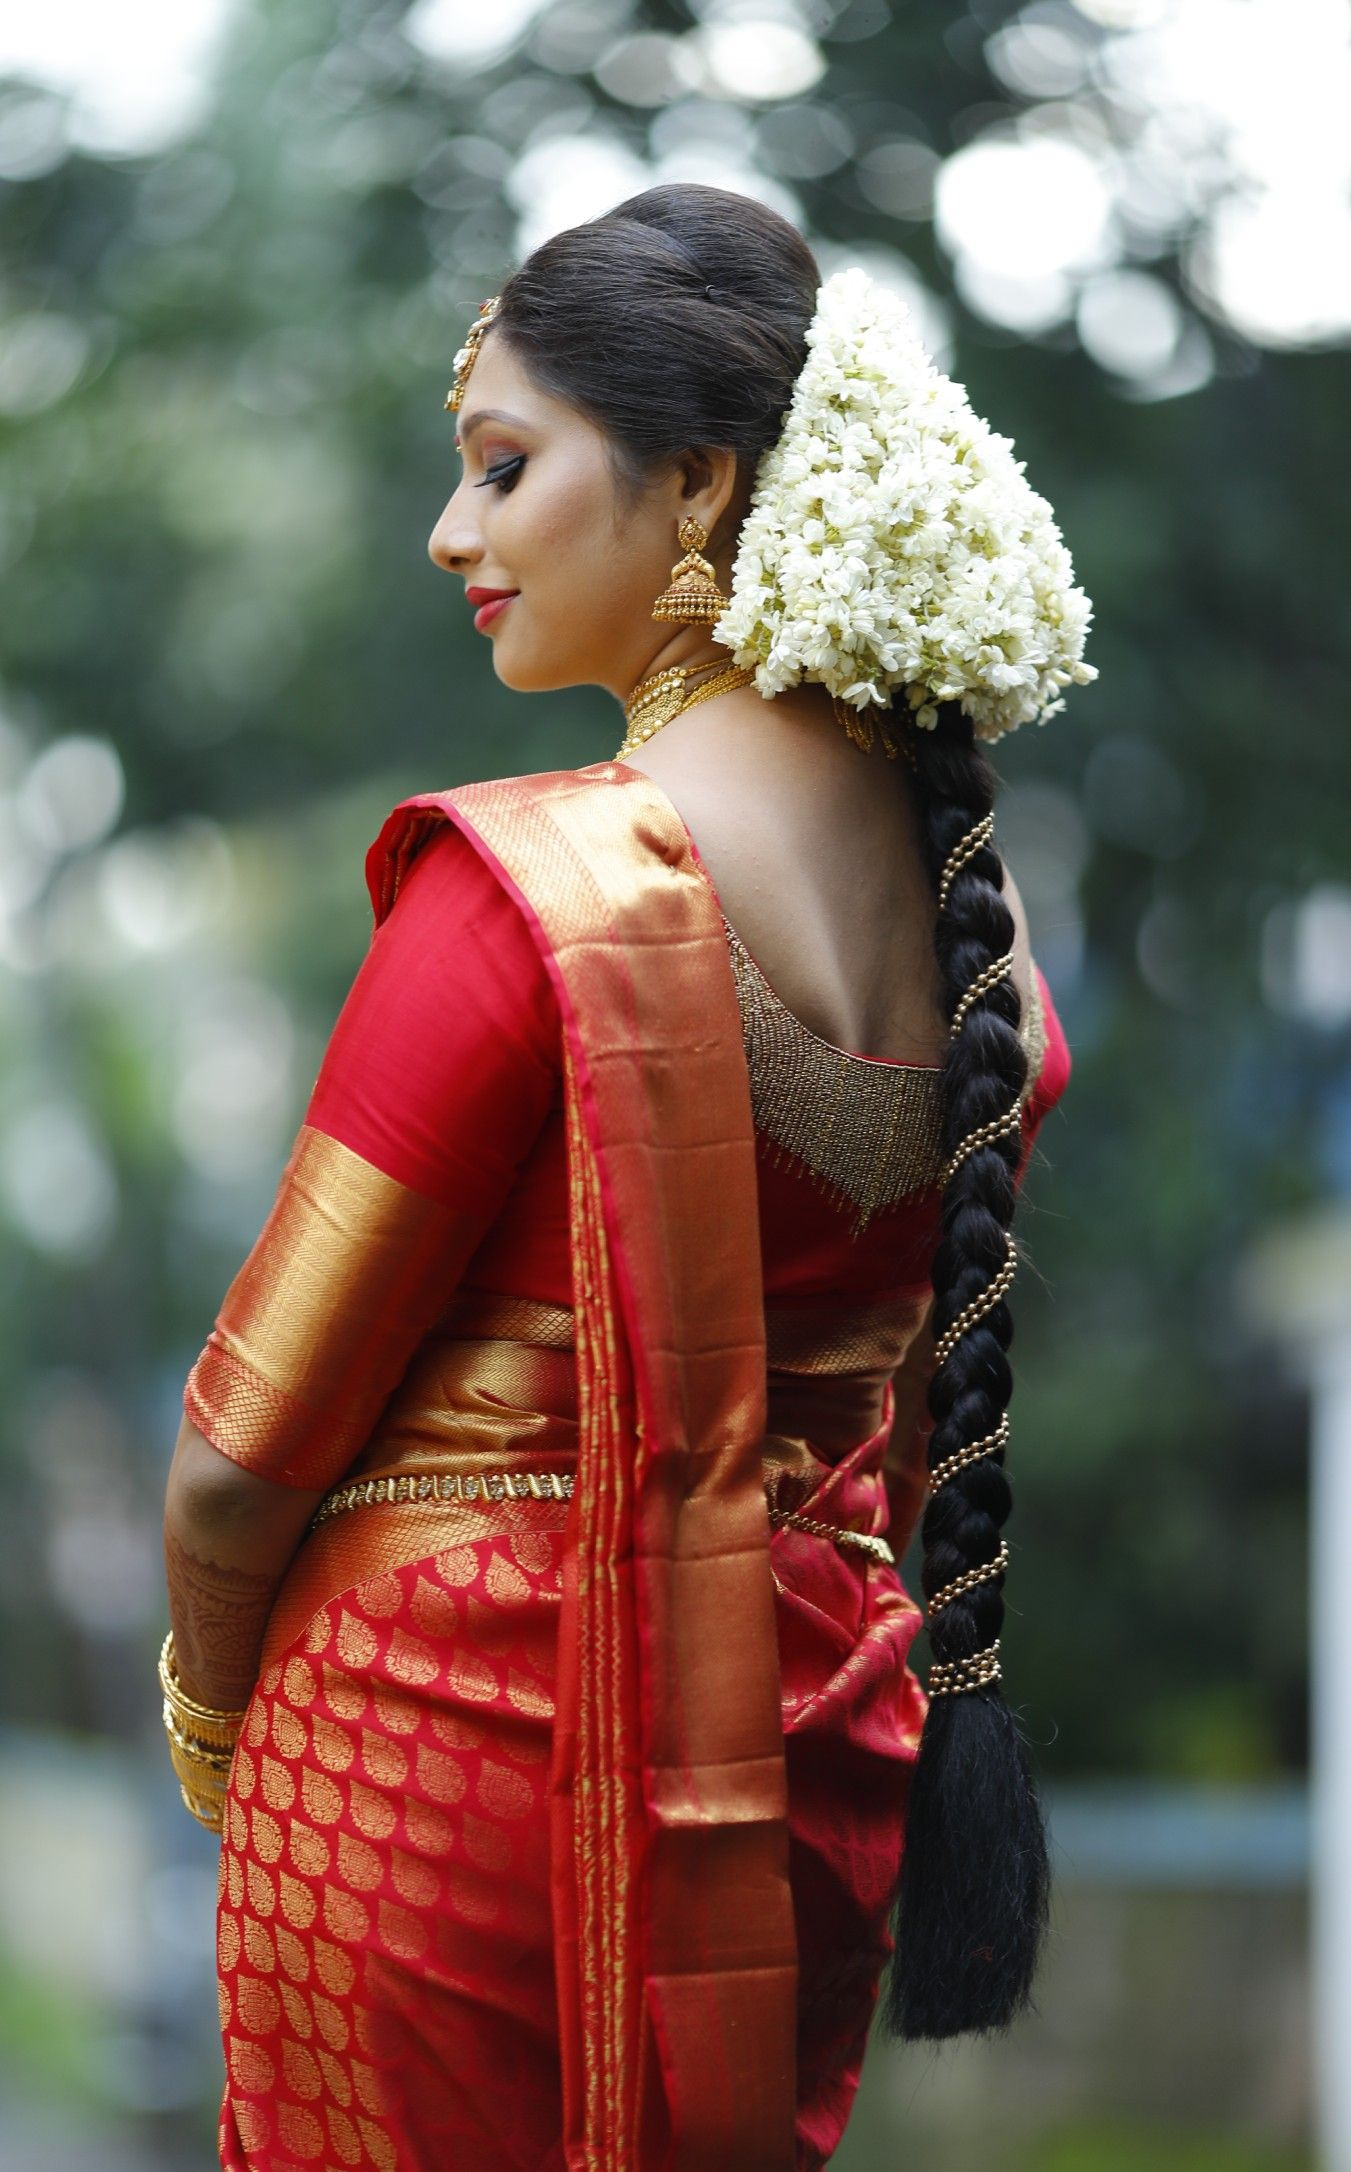 pin by krishnendhu on kerala hindu brides in 2019 | south